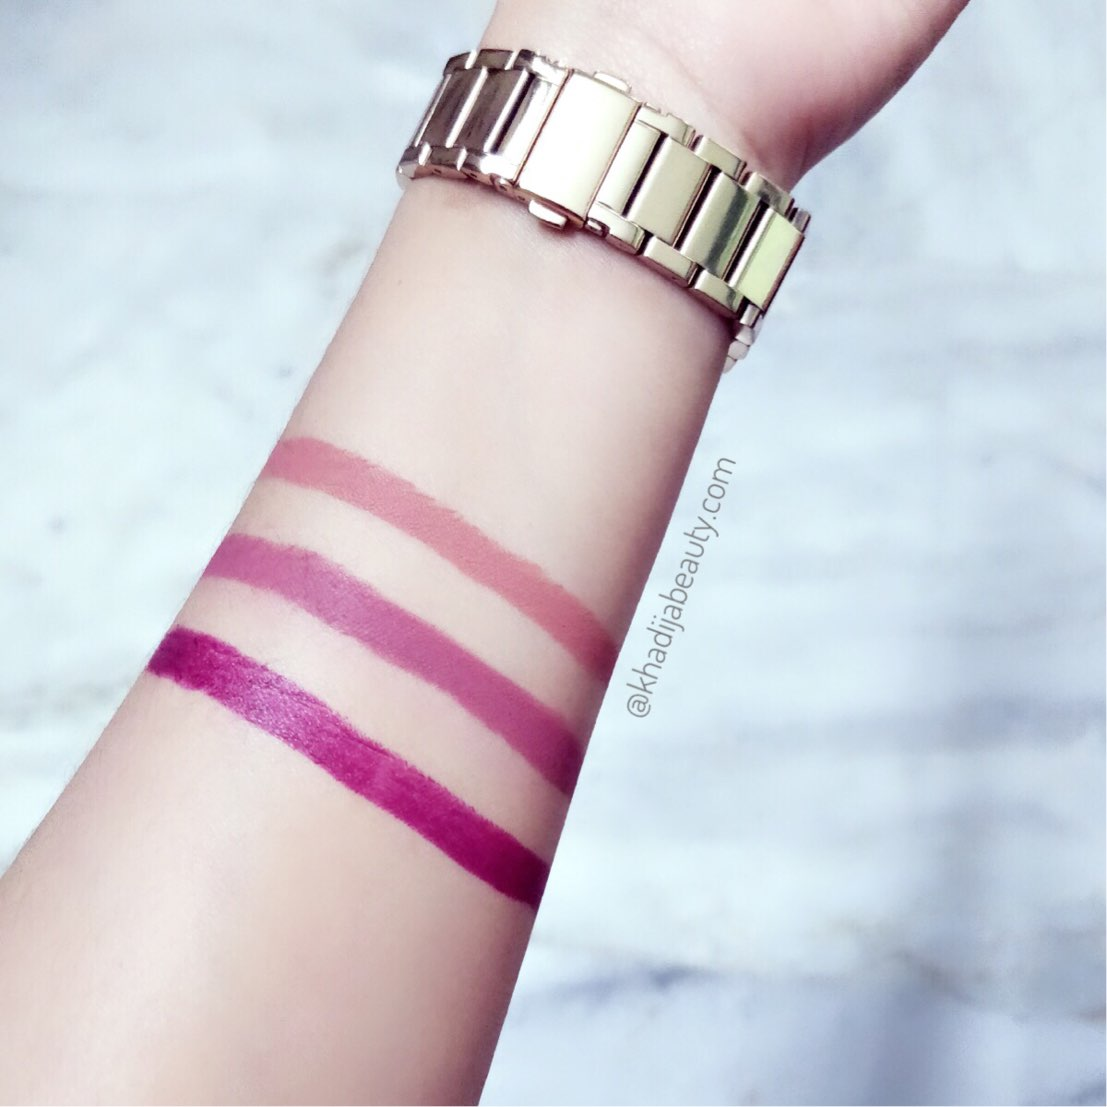 colorpop liipie stix review and swatches, cami, lbb, with the sand